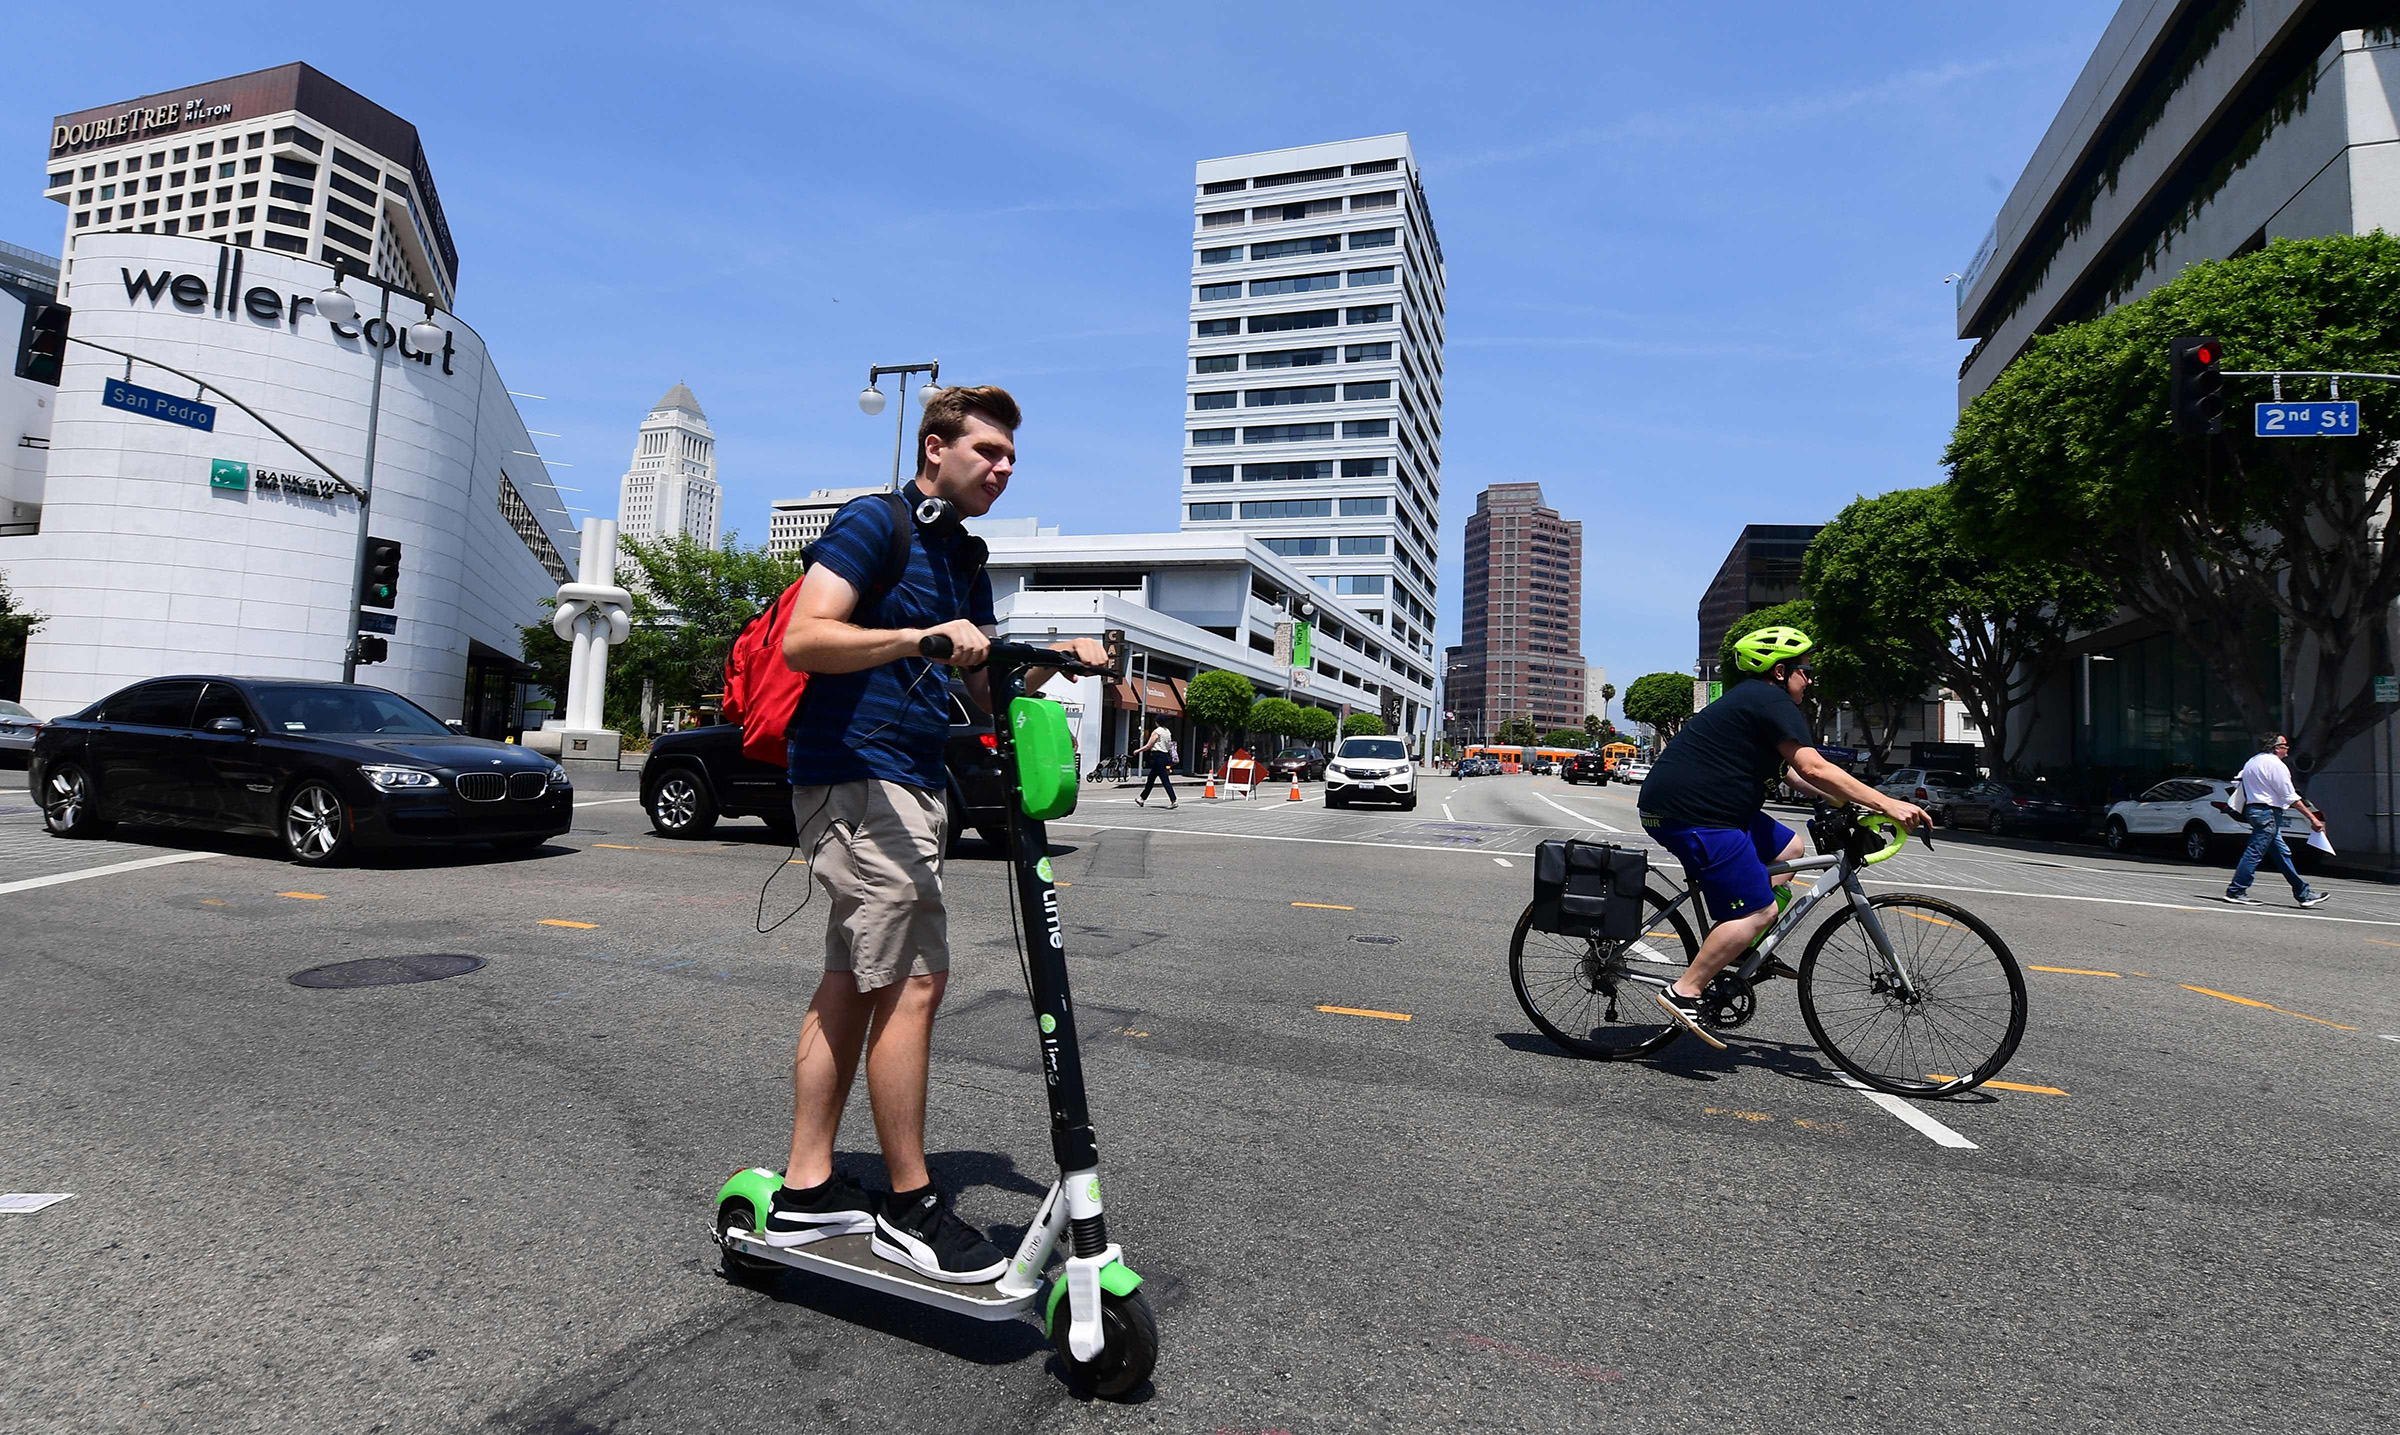 Cyclists and e-scooter collide in the battle for European roads